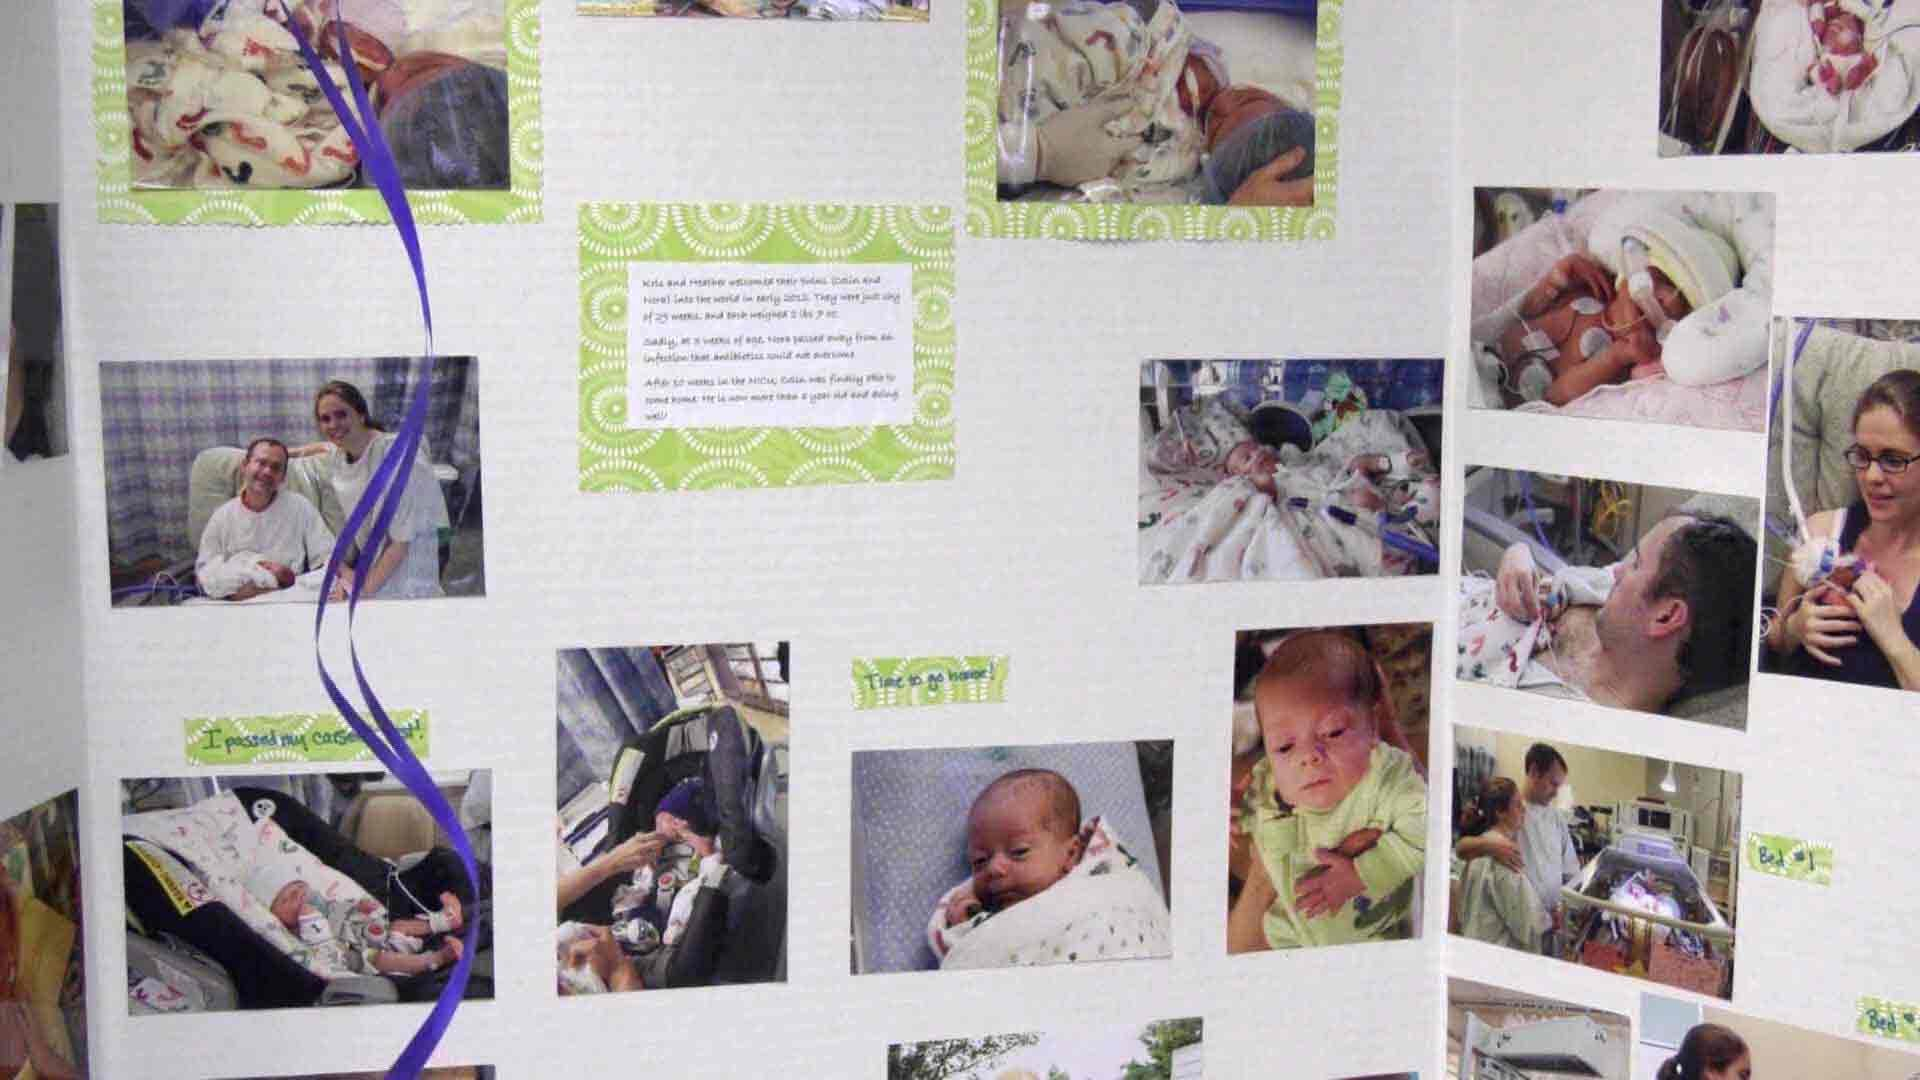 A poster-board with images of infants at the NICU.